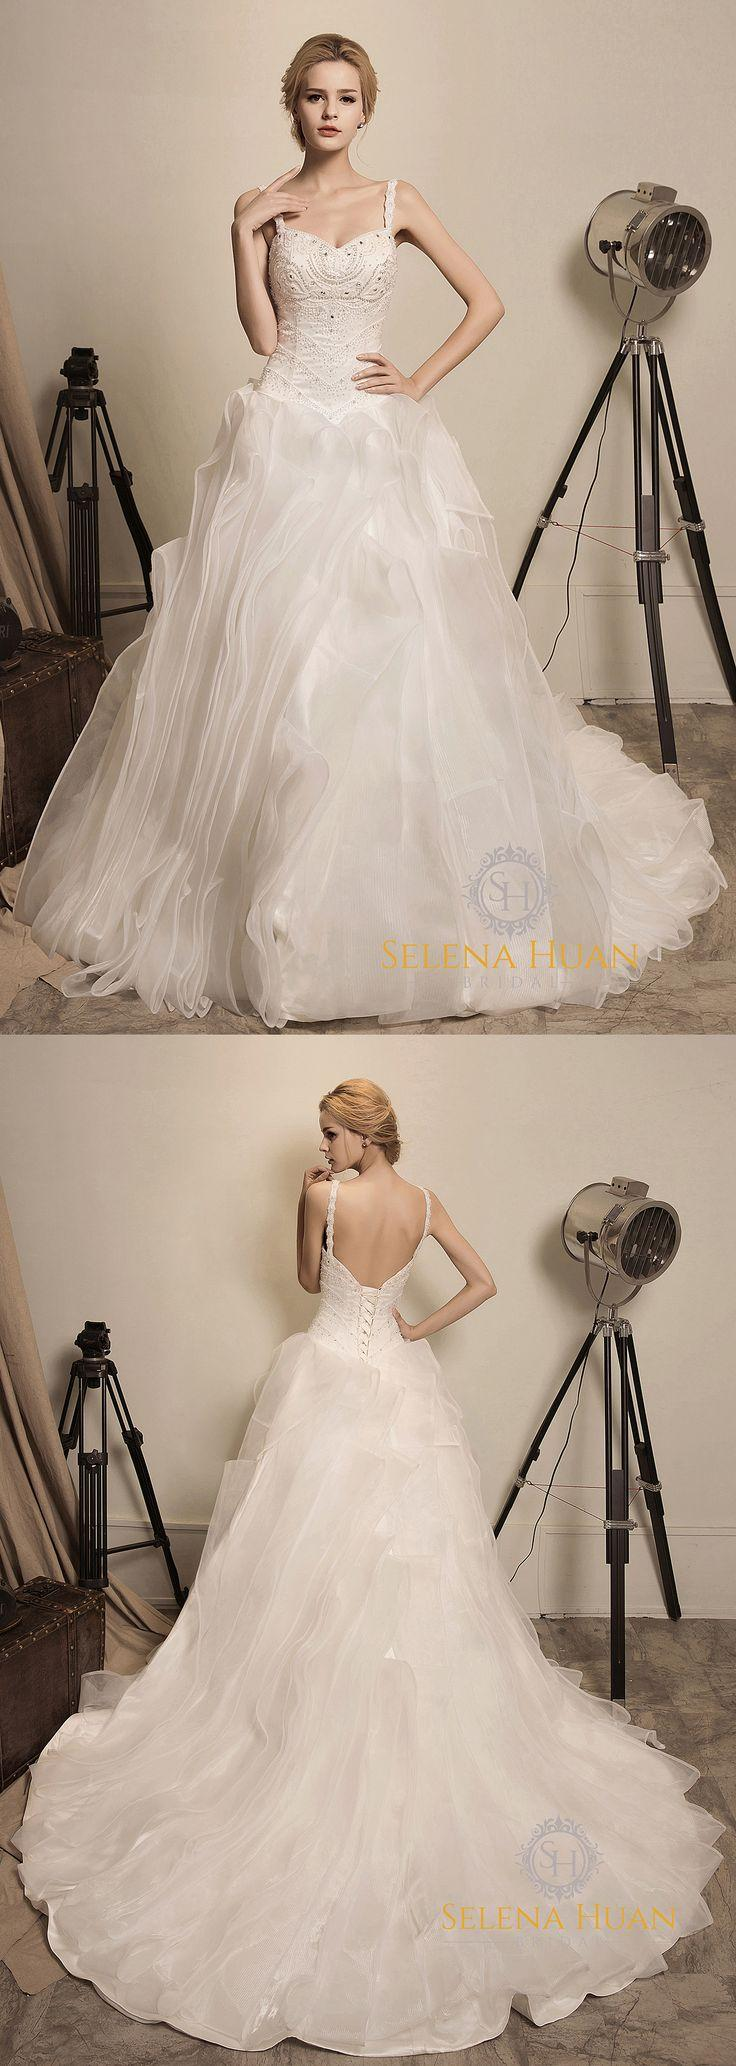 Wedding - Arrival Of The Queen - Selena Huan Beaded Lace Sweetheart Ruffled Organza Ball Gown